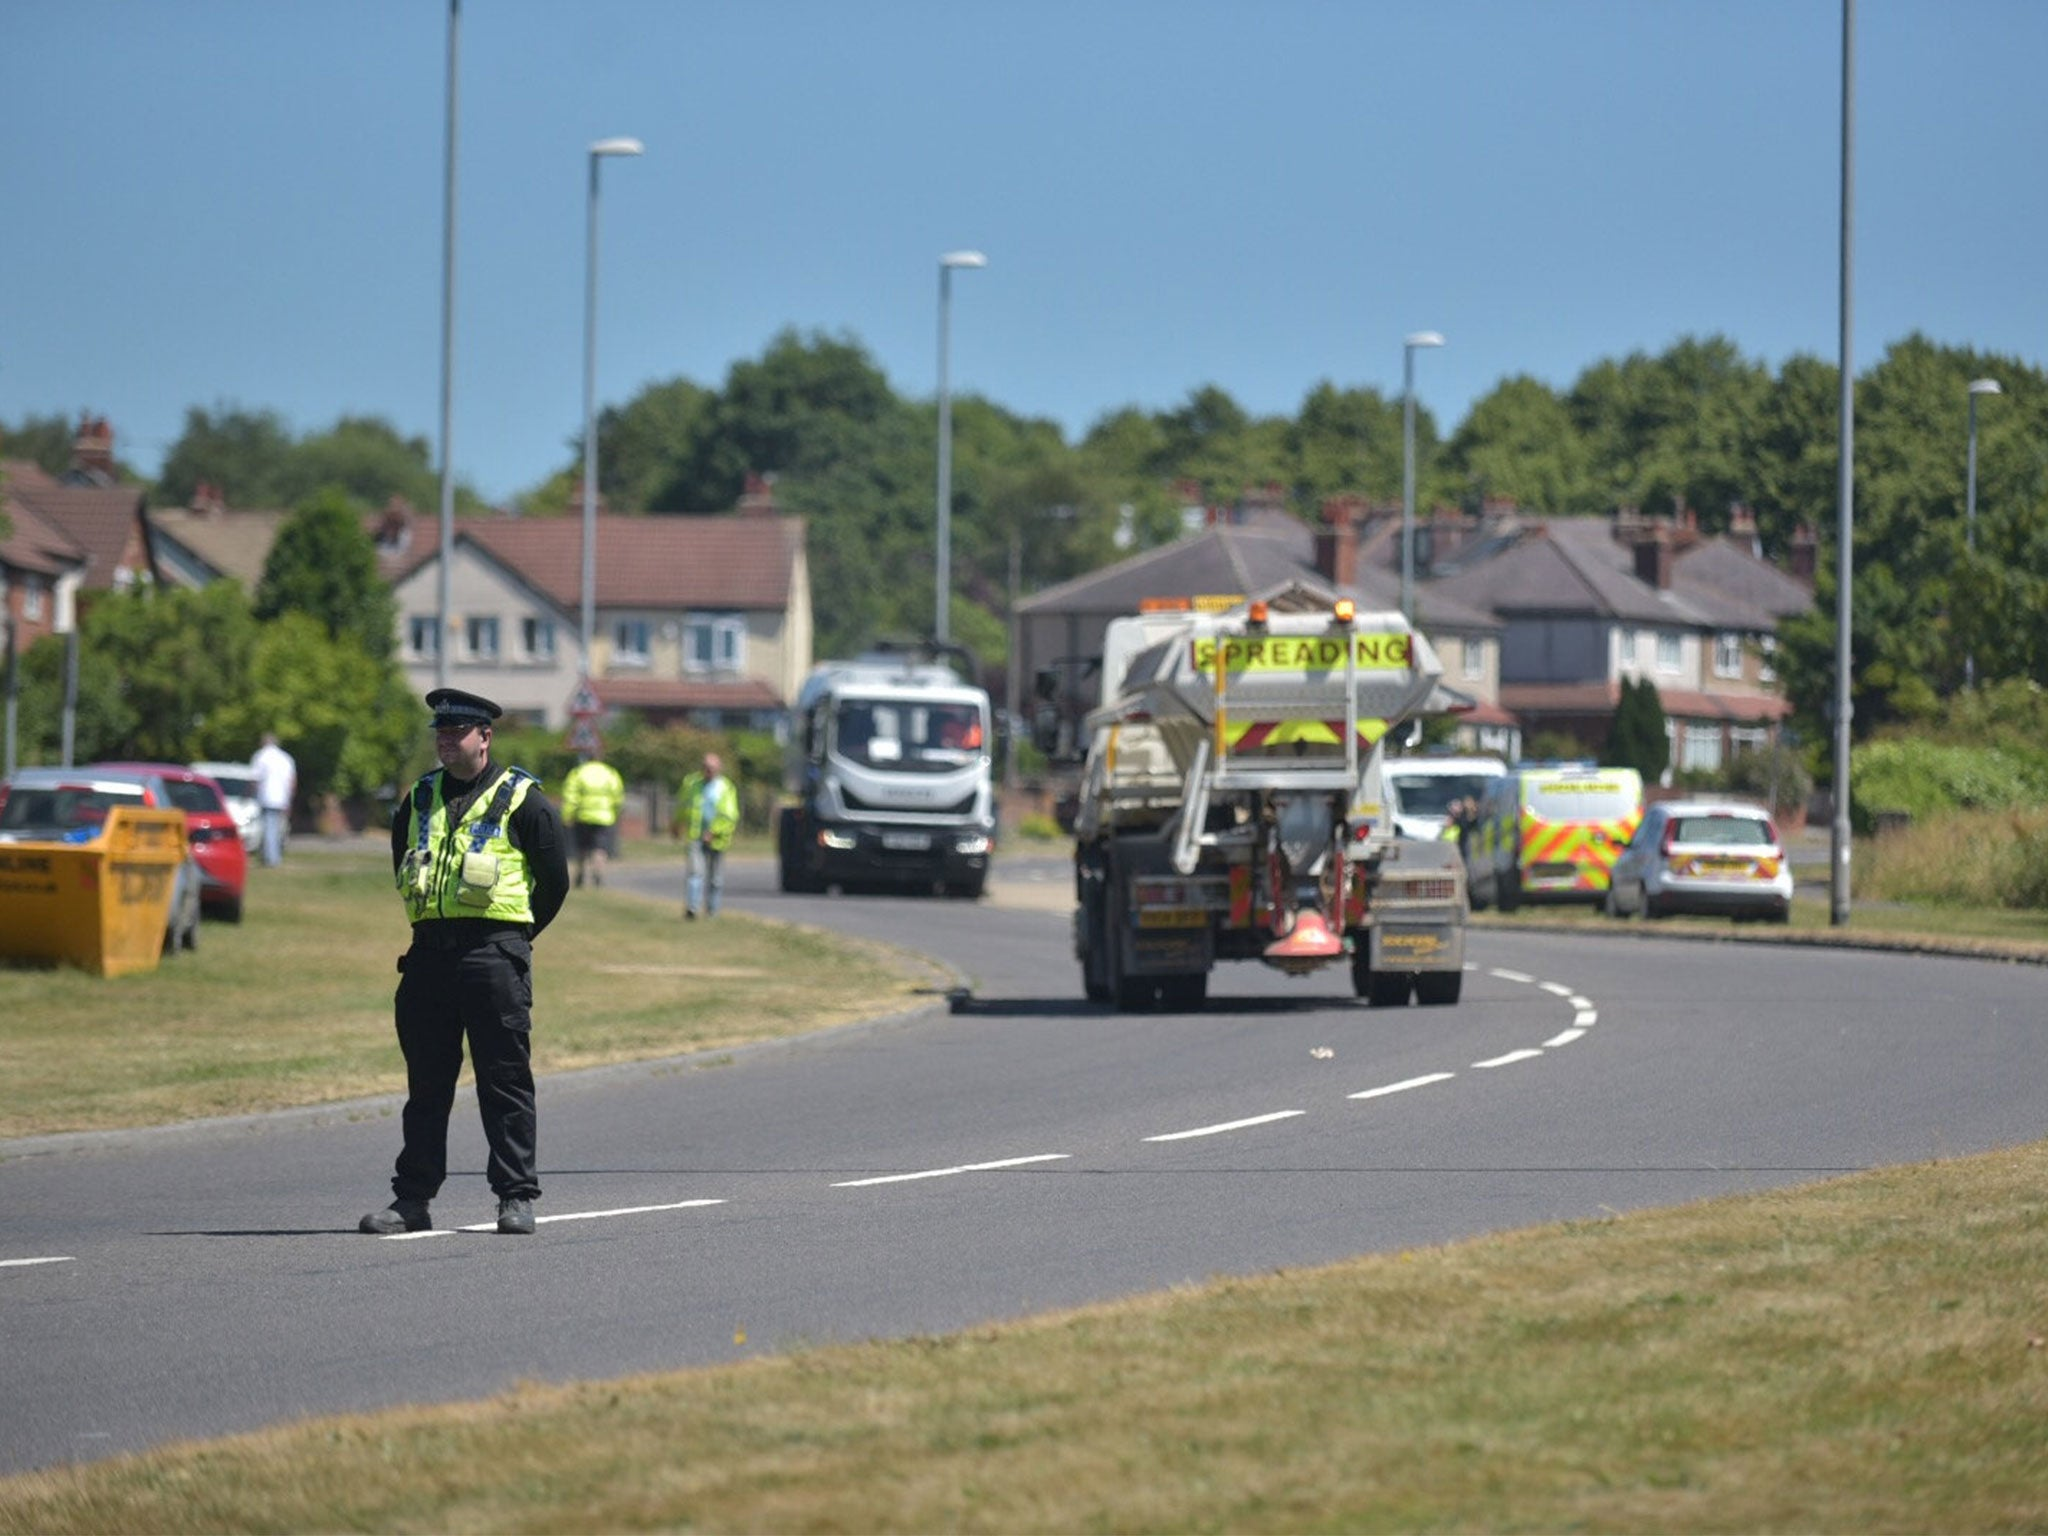 leeds car crash: four men aged between 18 and 21 killed and two